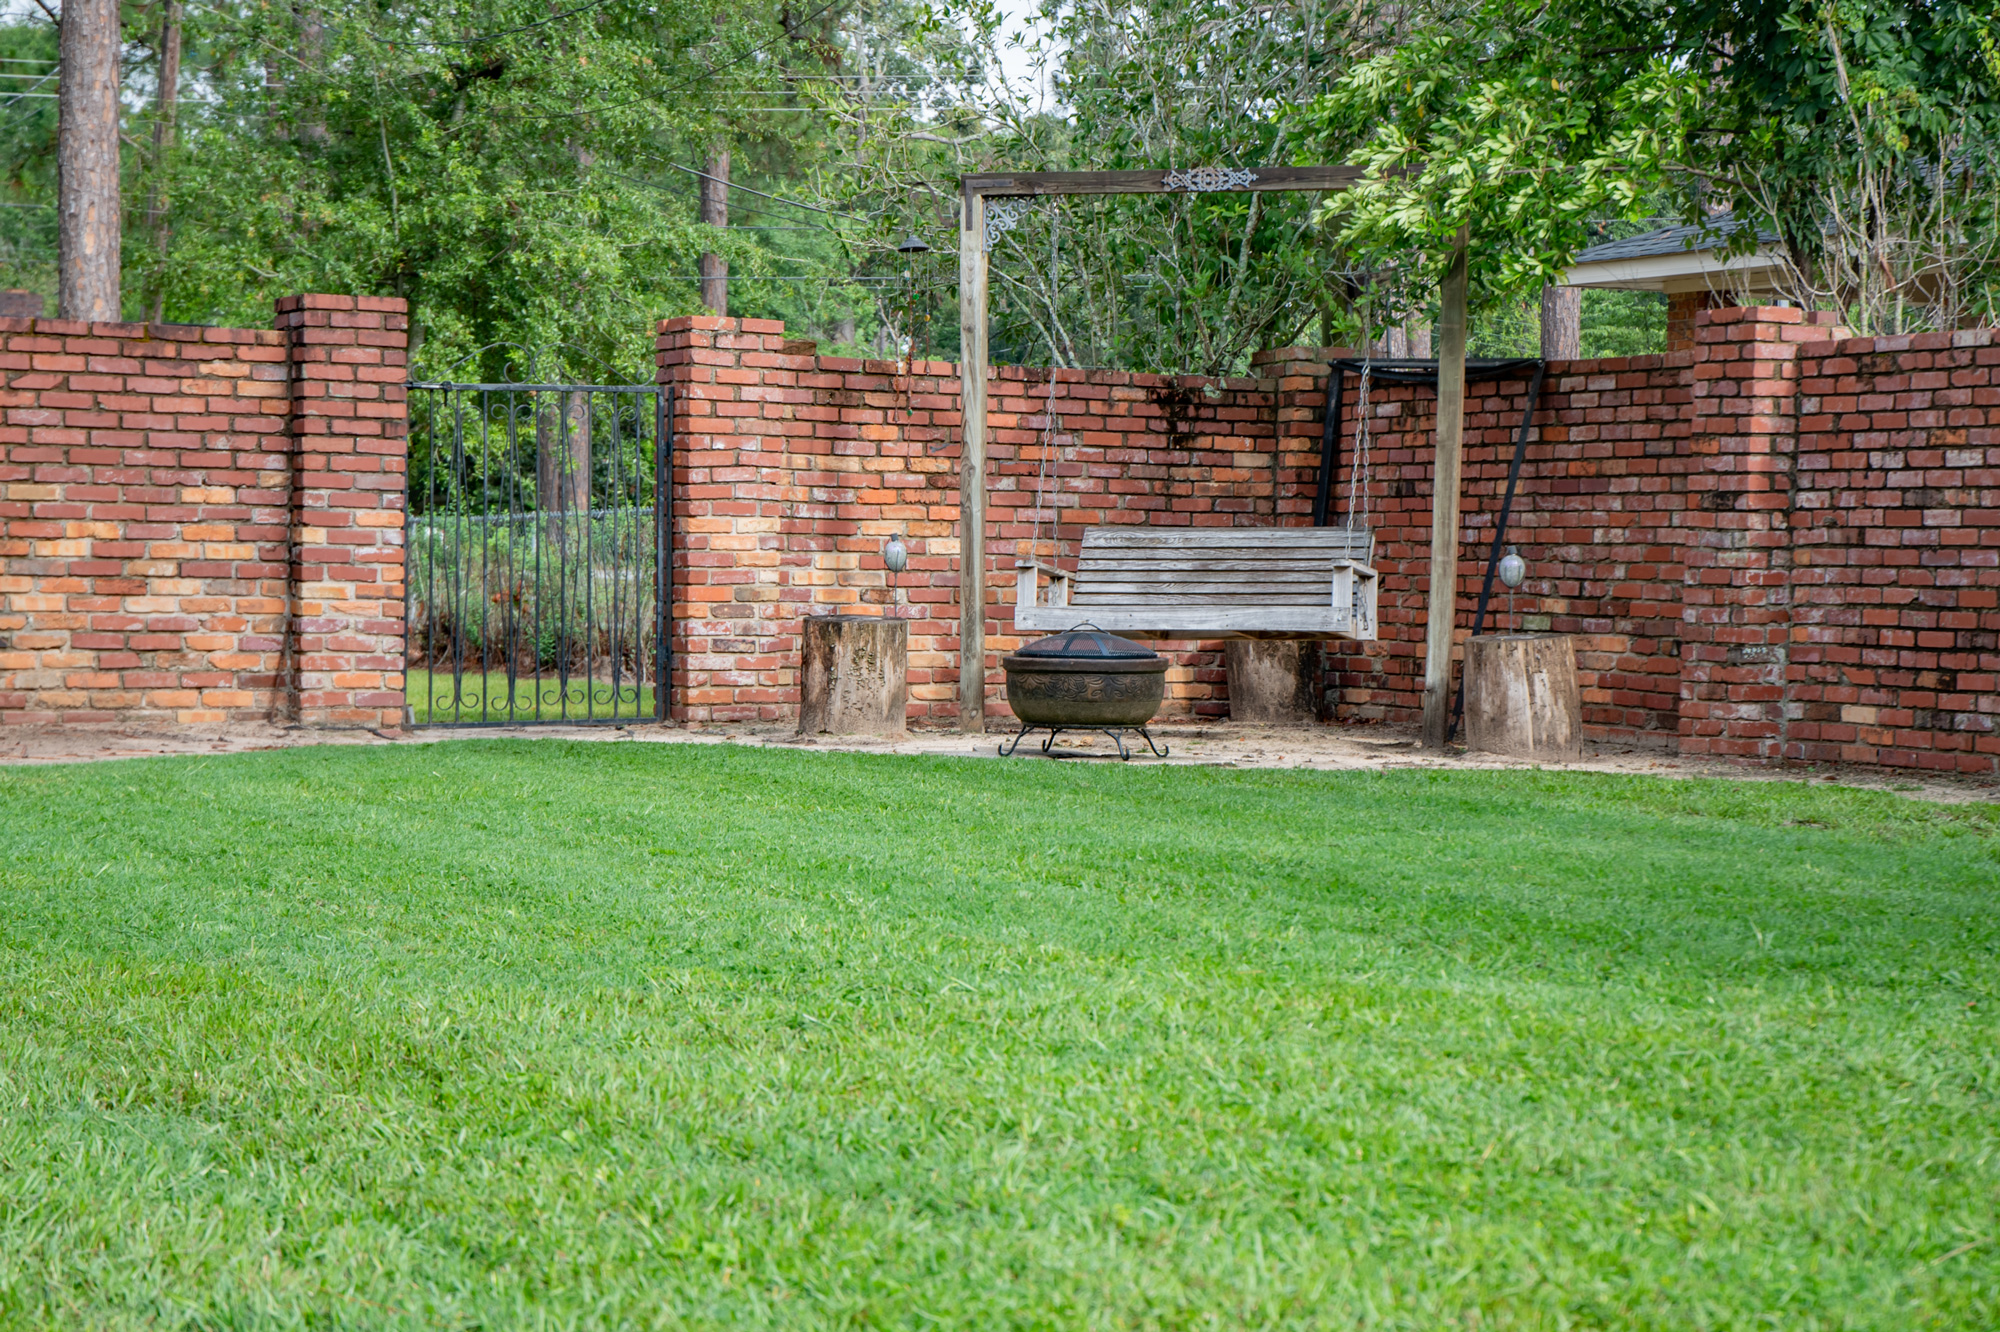 Secluded backyard garden - The brick privacy wall that encloses the entire back yard provides seclusion and safety.